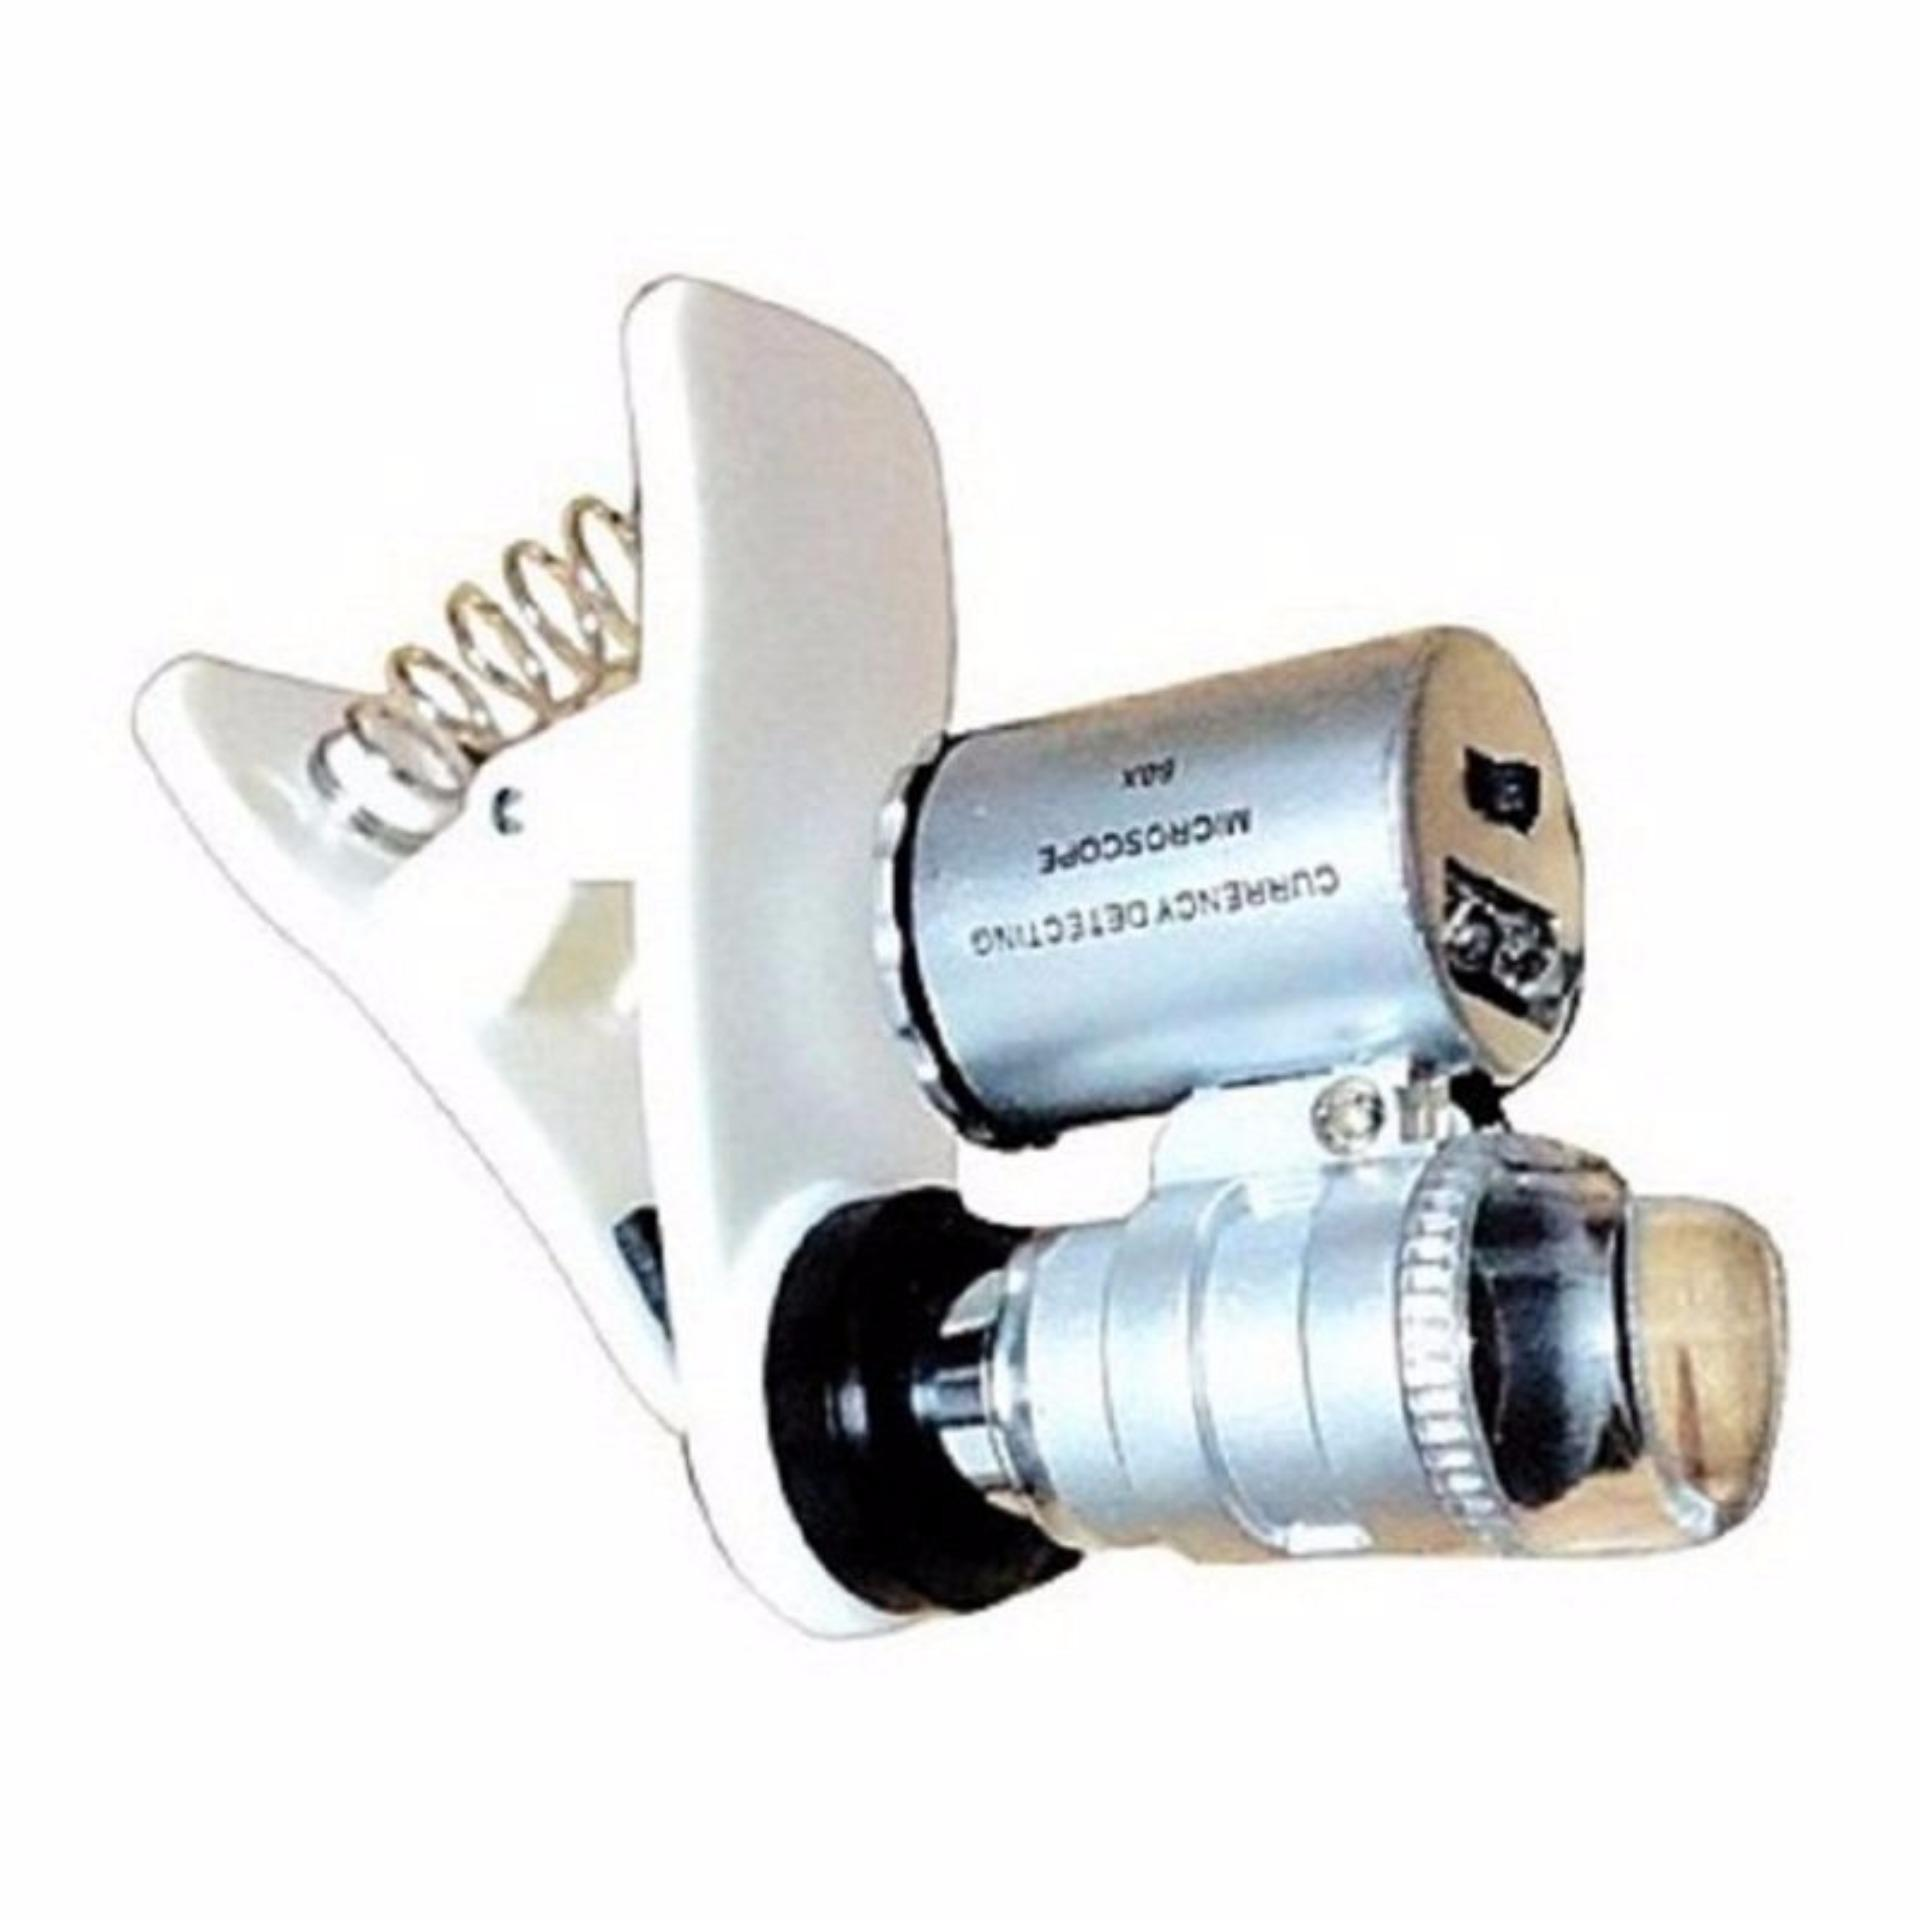 StarStore Mikroskop Handphone Clip On Microscope LED Ponsel PhoneBatu Emas